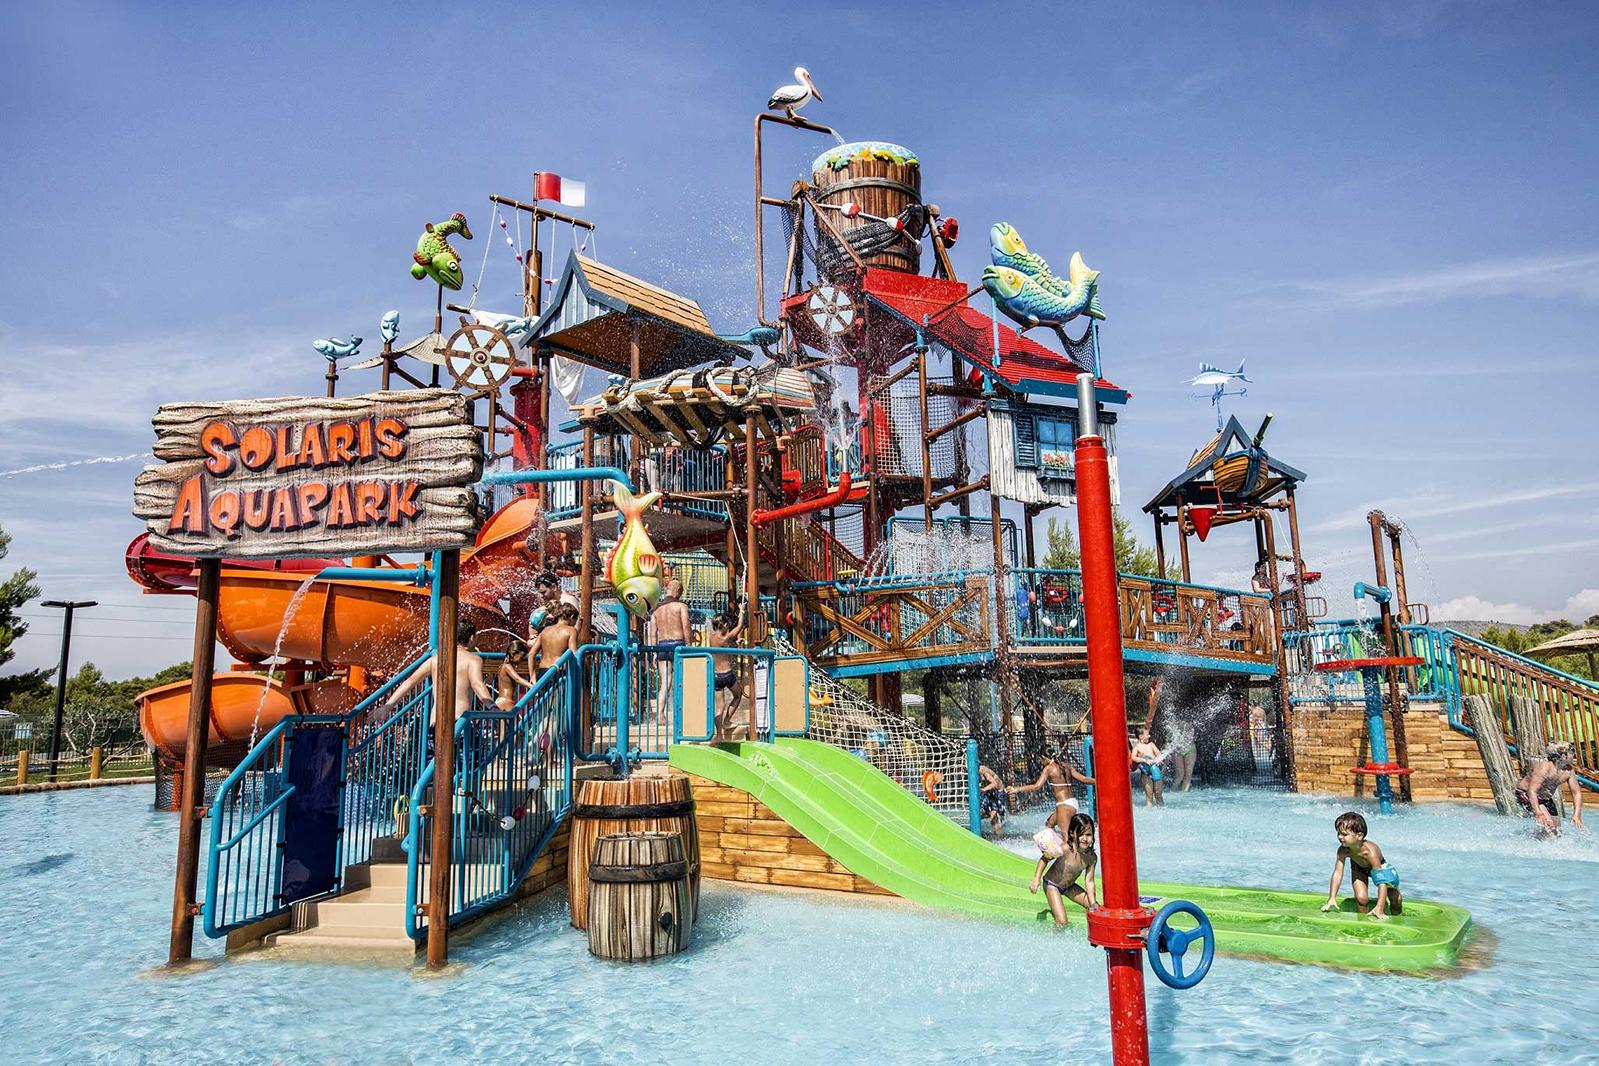 Aquapark Solaris: Fun for the whole family